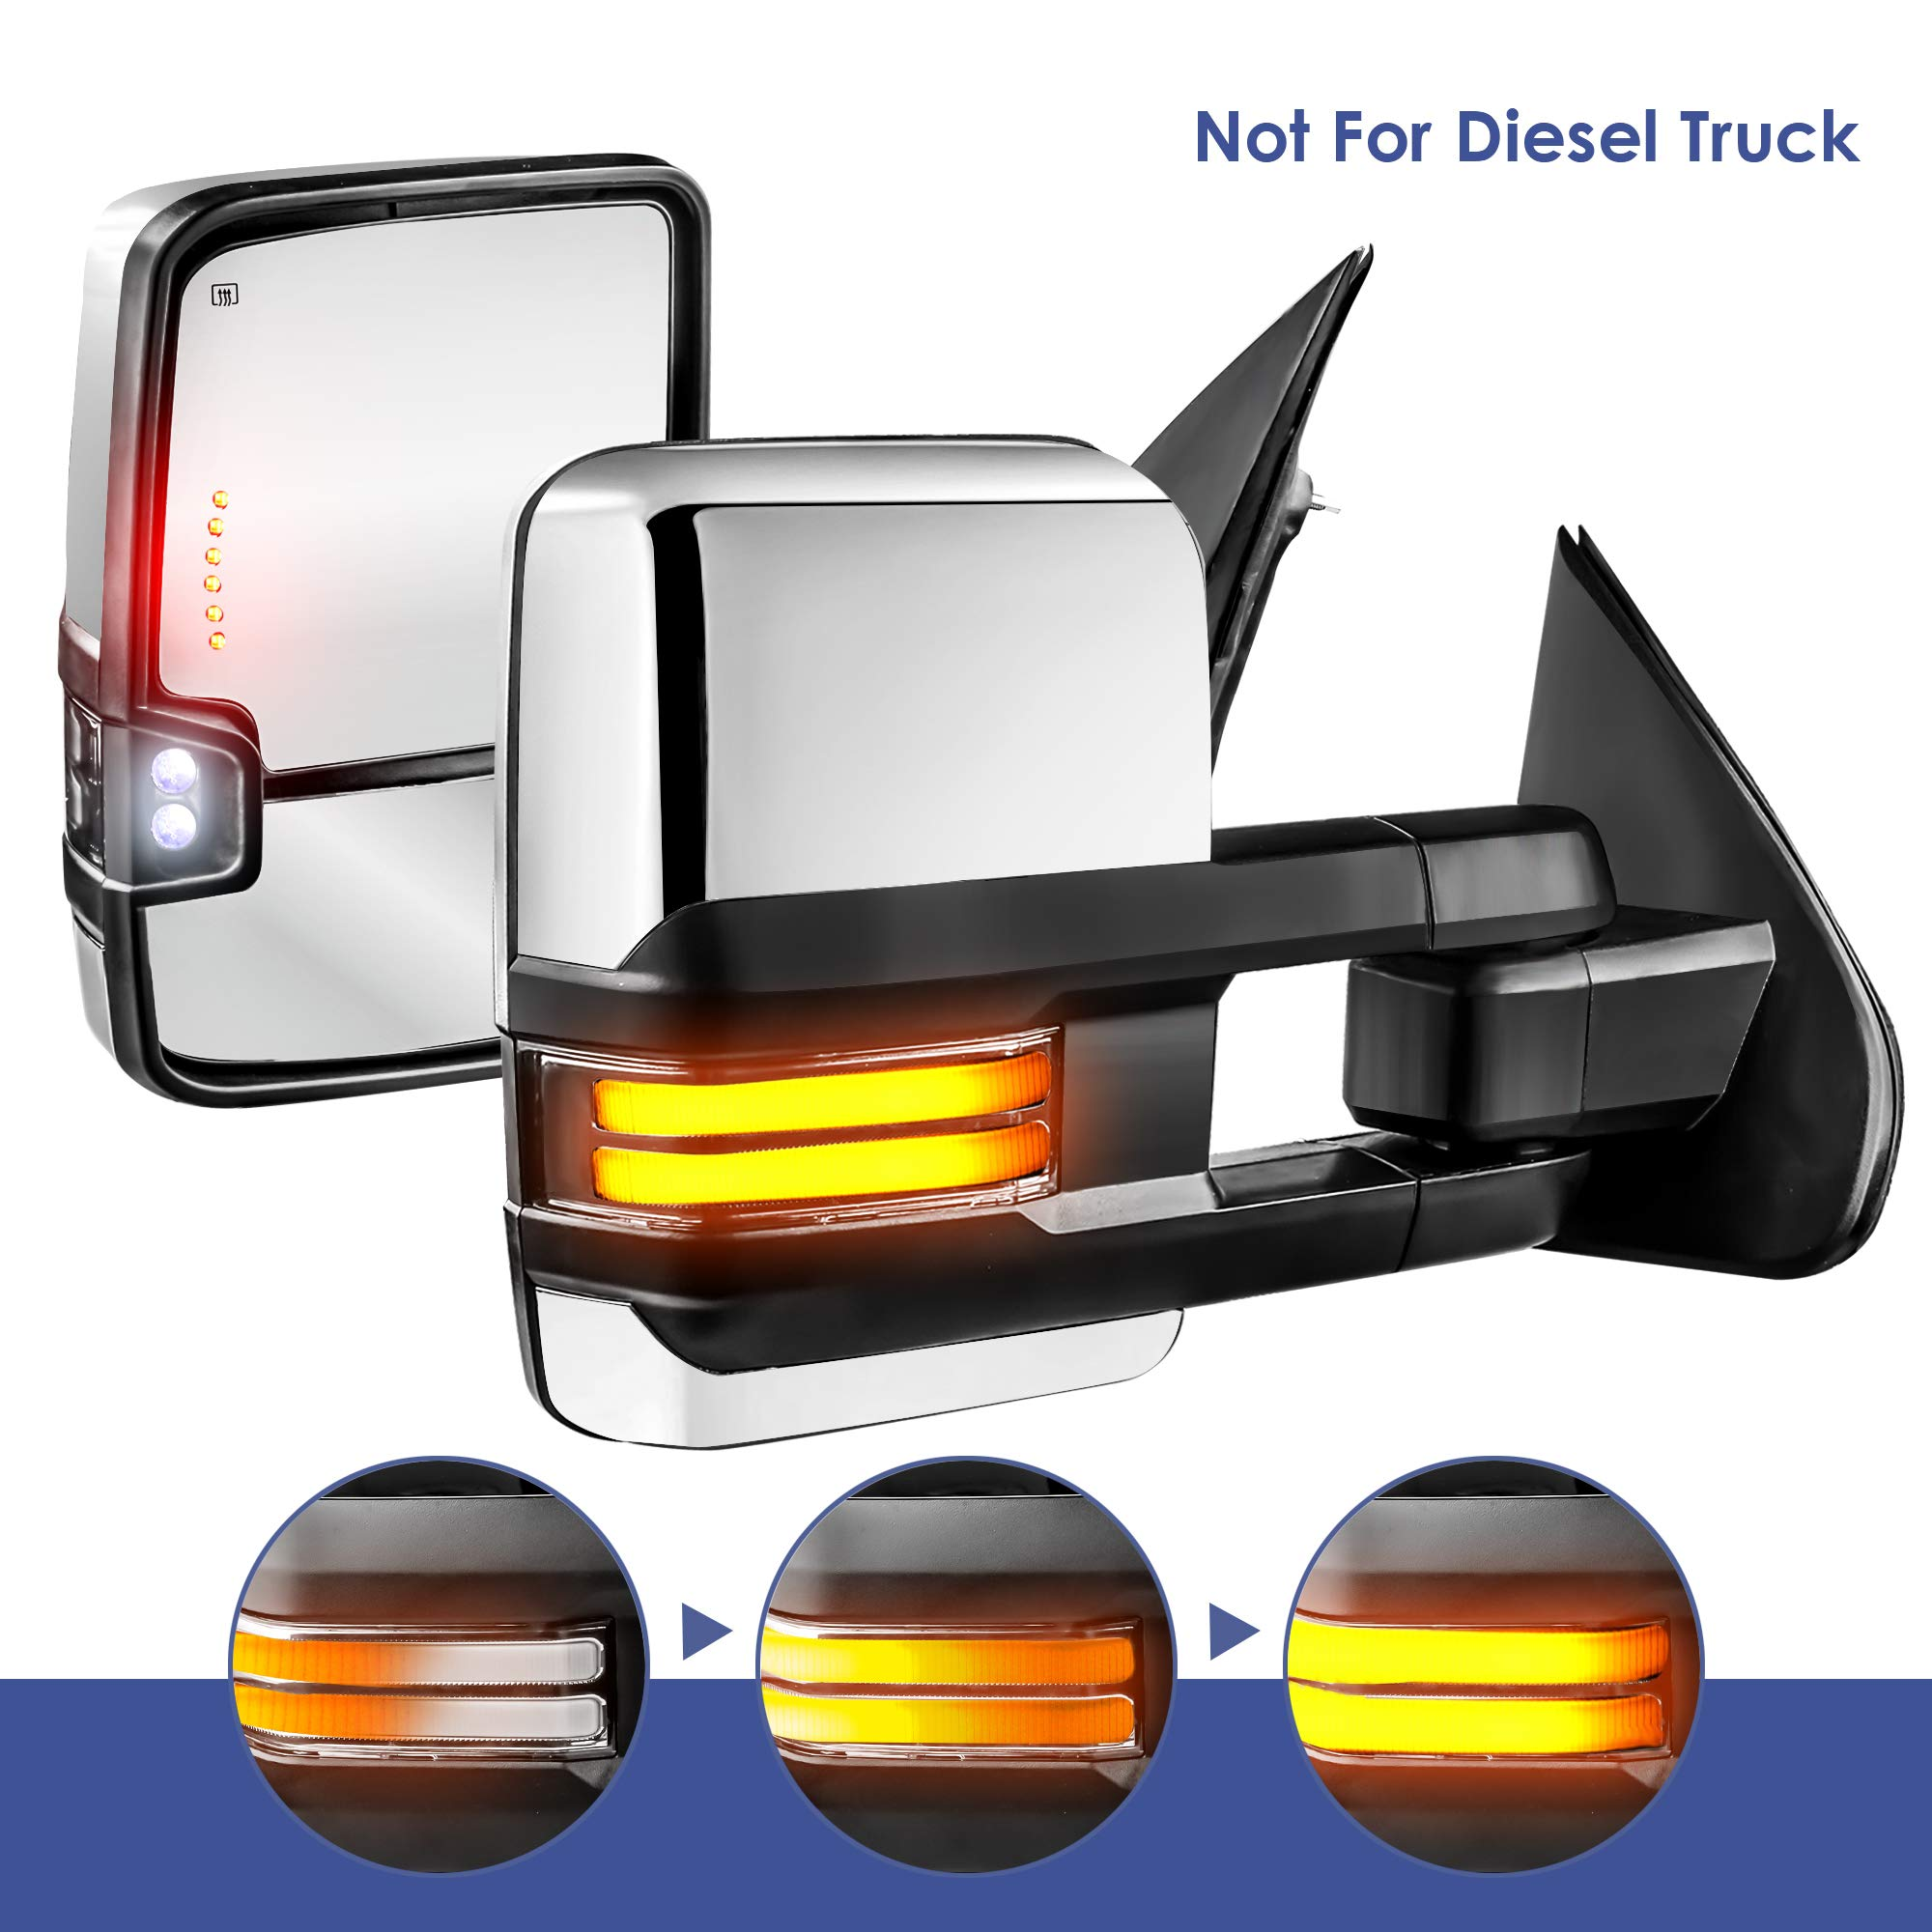 MOSTPLUS Power Heated Towing Mirrors for Chevy Silverado GMC Serria 2014-2018 w/Sequential Turn light, Clearance Lamp, Running Light(Set of 2) Not for diesel truck (Chrome) by MOSTPLUS